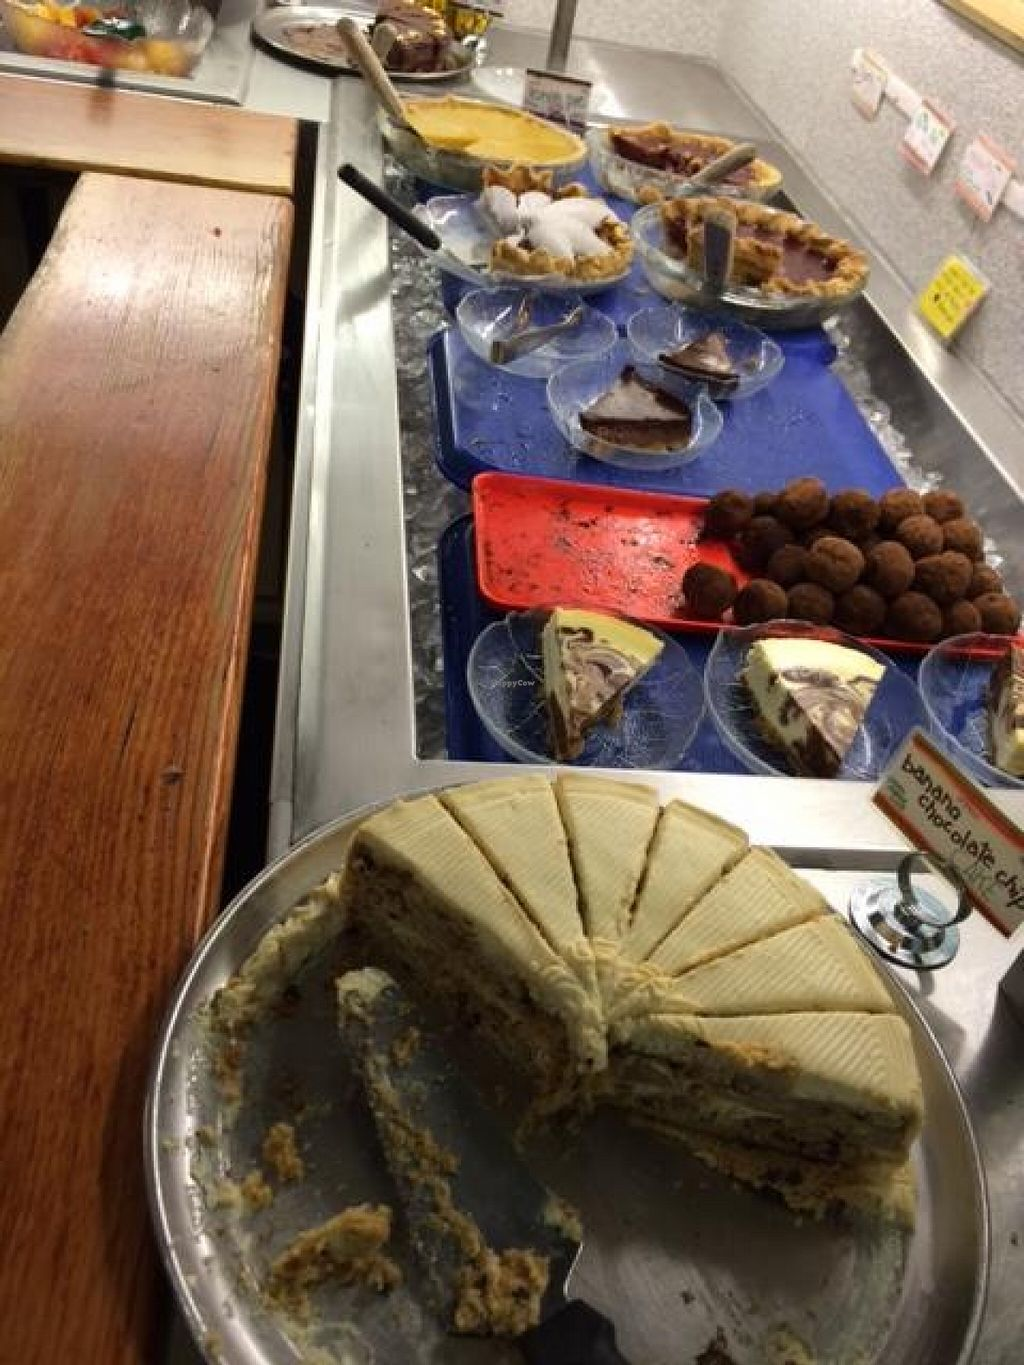 """Photo of The Green Door  by <a href=""""/members/profile/VeganVegasGirl"""">VeganVegasGirl</a> <br/>More dessert choices! <br/> January 2, 2016  - <a href='/contact/abuse/image/1326/130800'>Report</a>"""